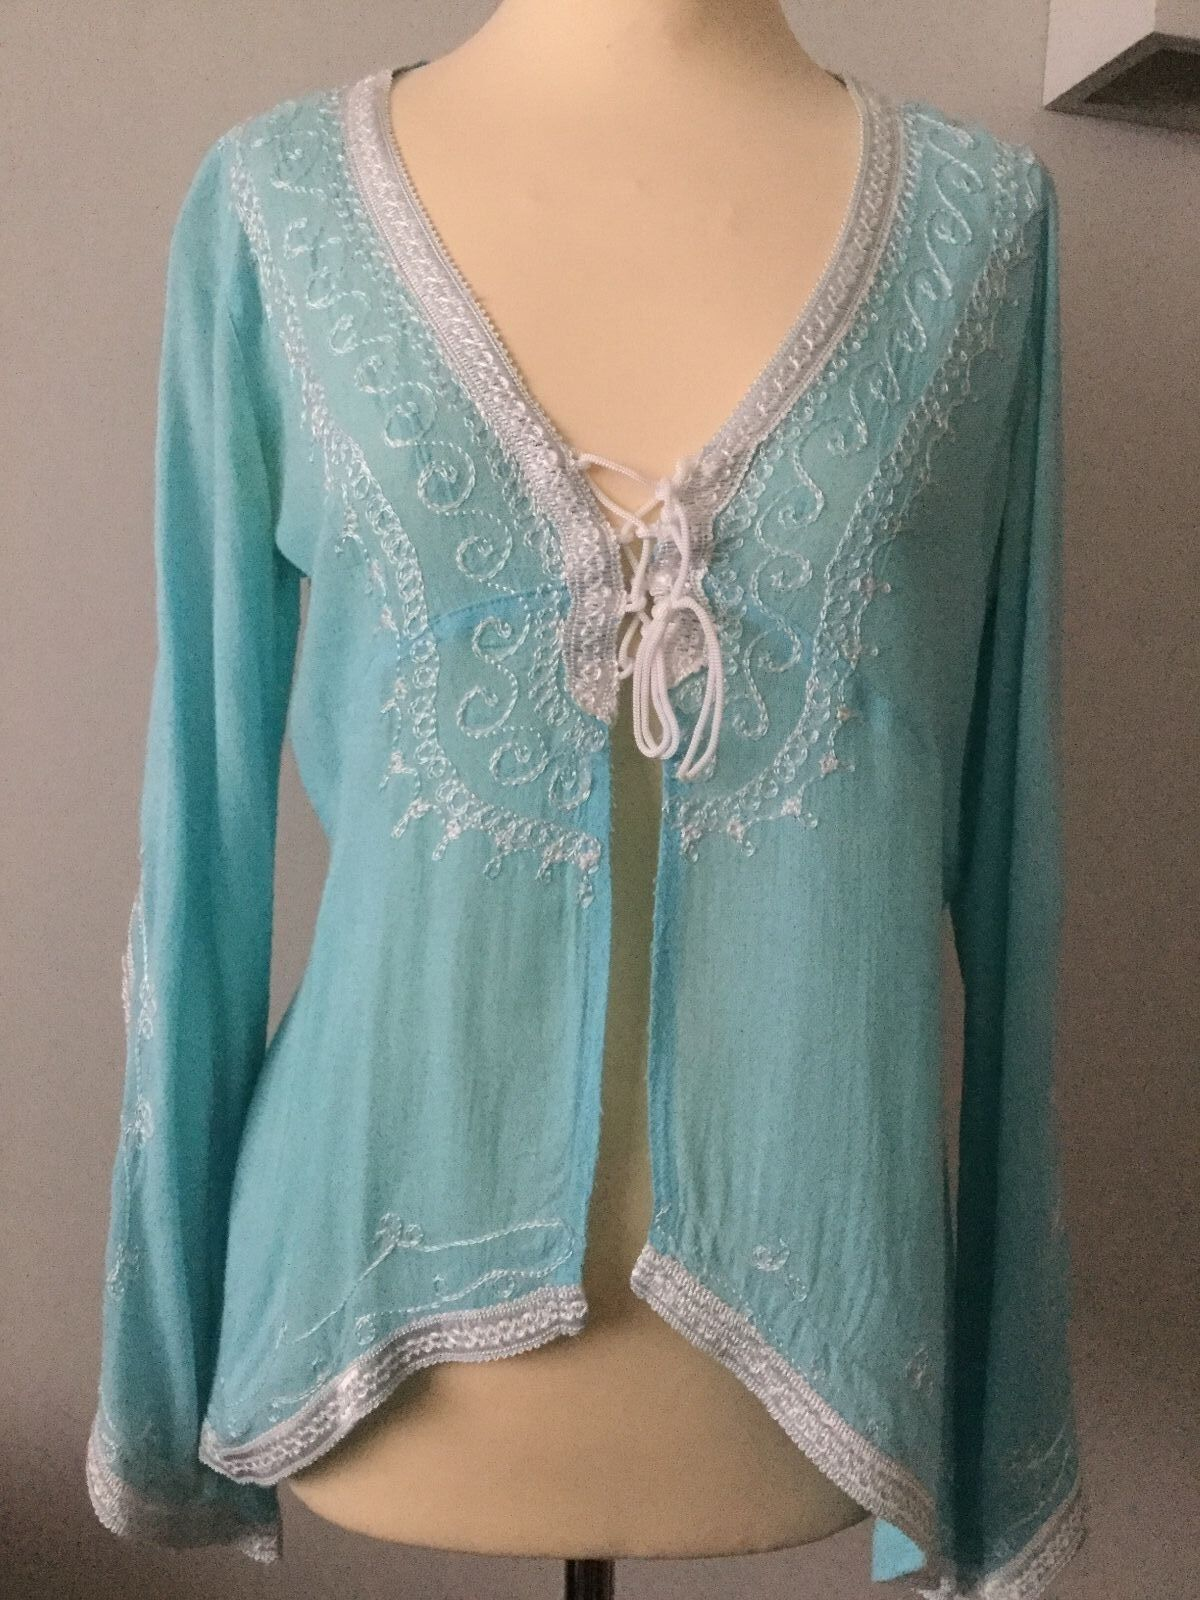 DONALE  ST. BARTS ST. TROPEZ TURQUOISE COTTON EMBROIDErot TOP ONE Größe WORN ONCE